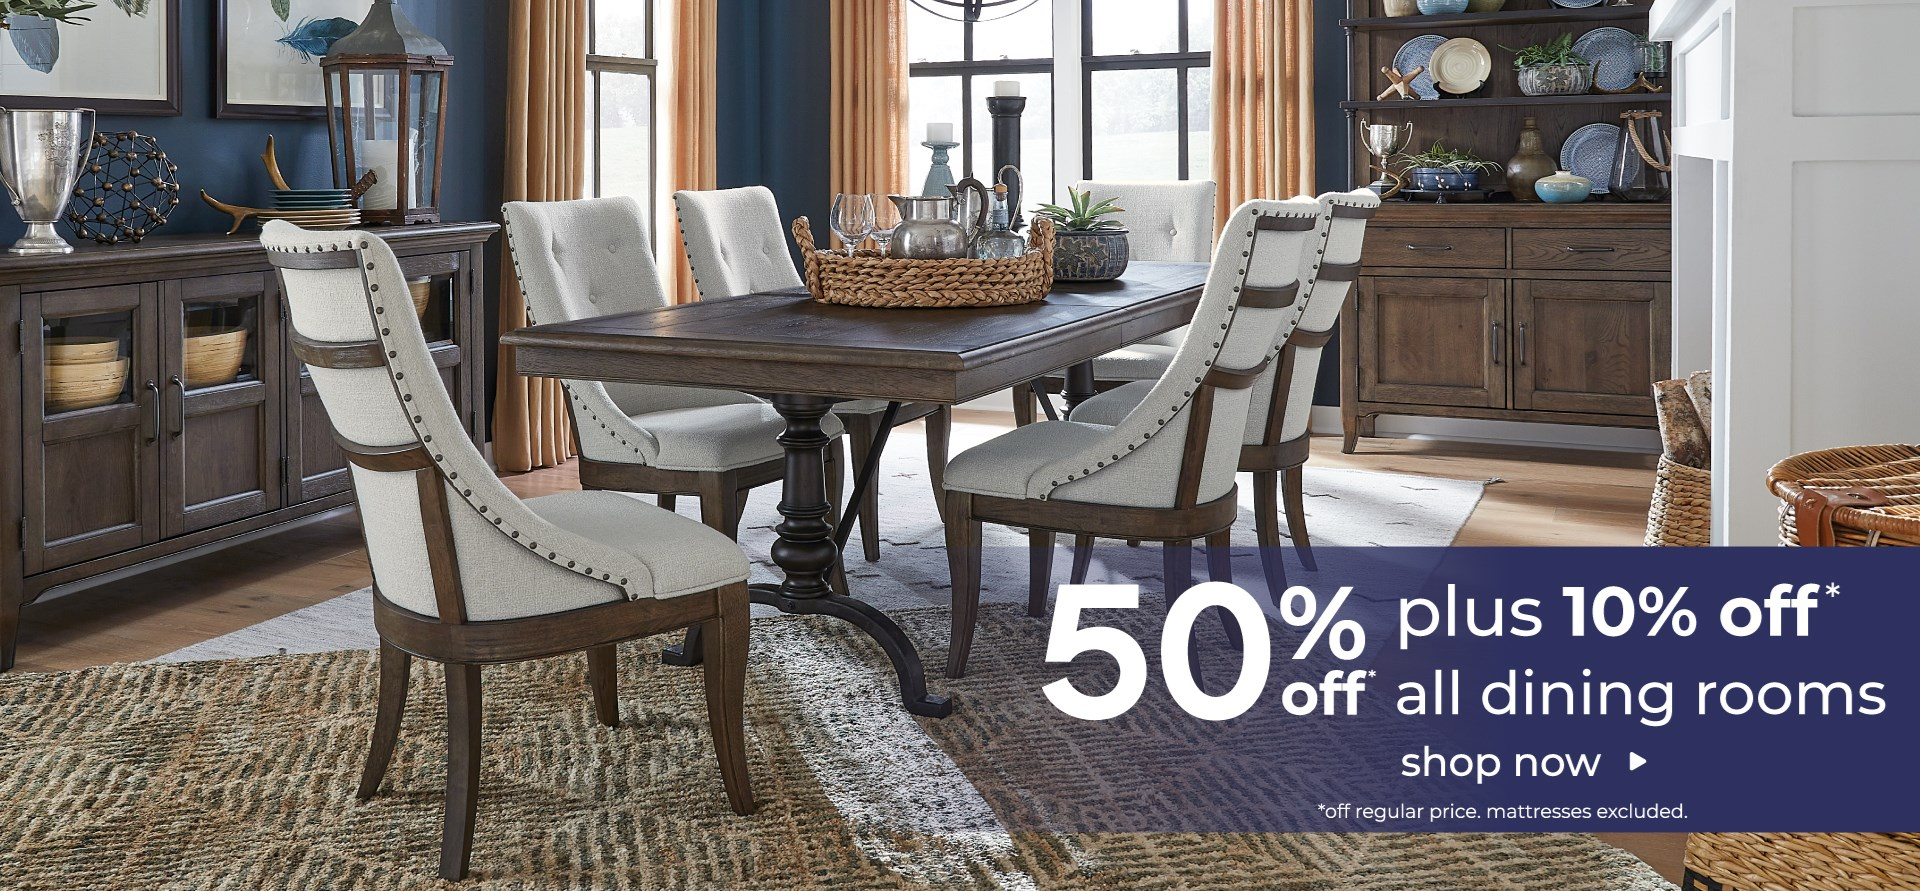 Dining Rooms at VC Furniture